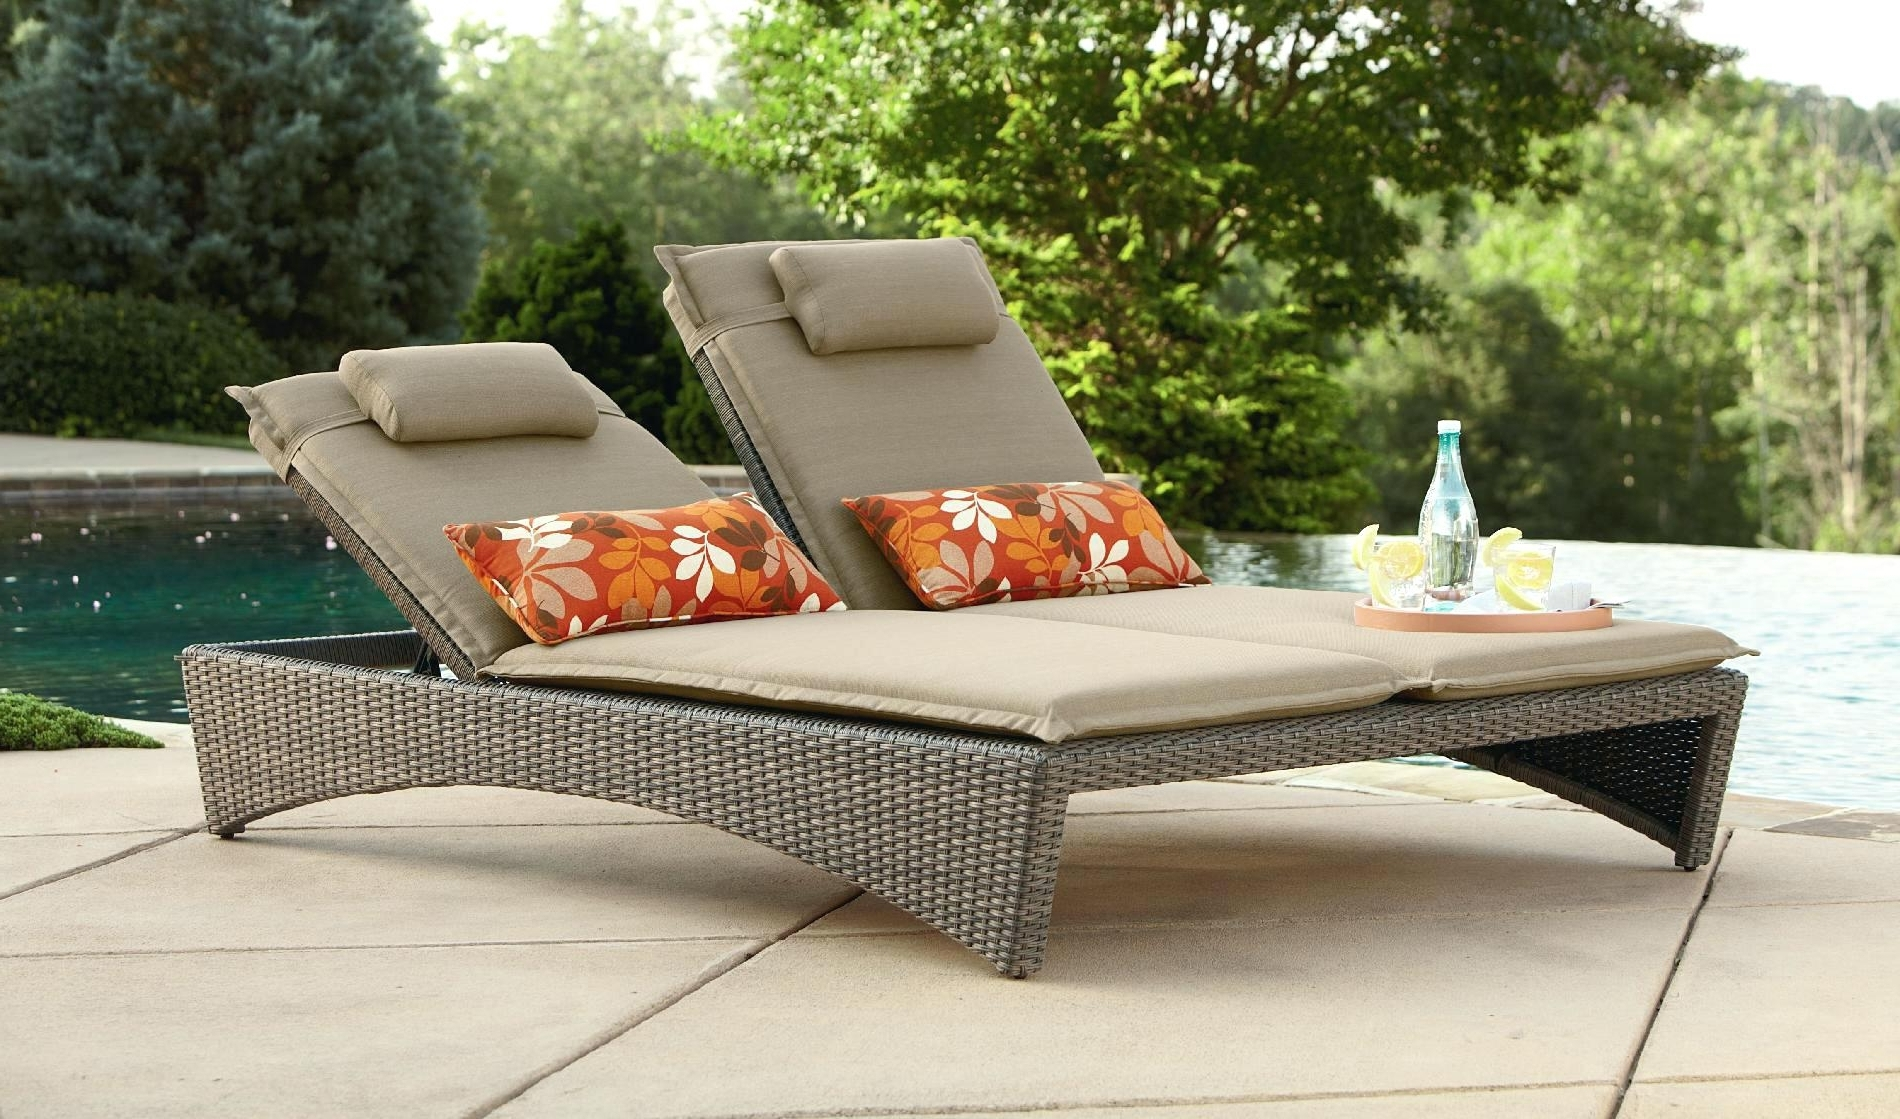 Latest Outdoor Chaise Lounge Chairs Under 100 Awesome Chair For Two With Regard To Chaise Lounge Chairs Under $ (View 11 of 15)